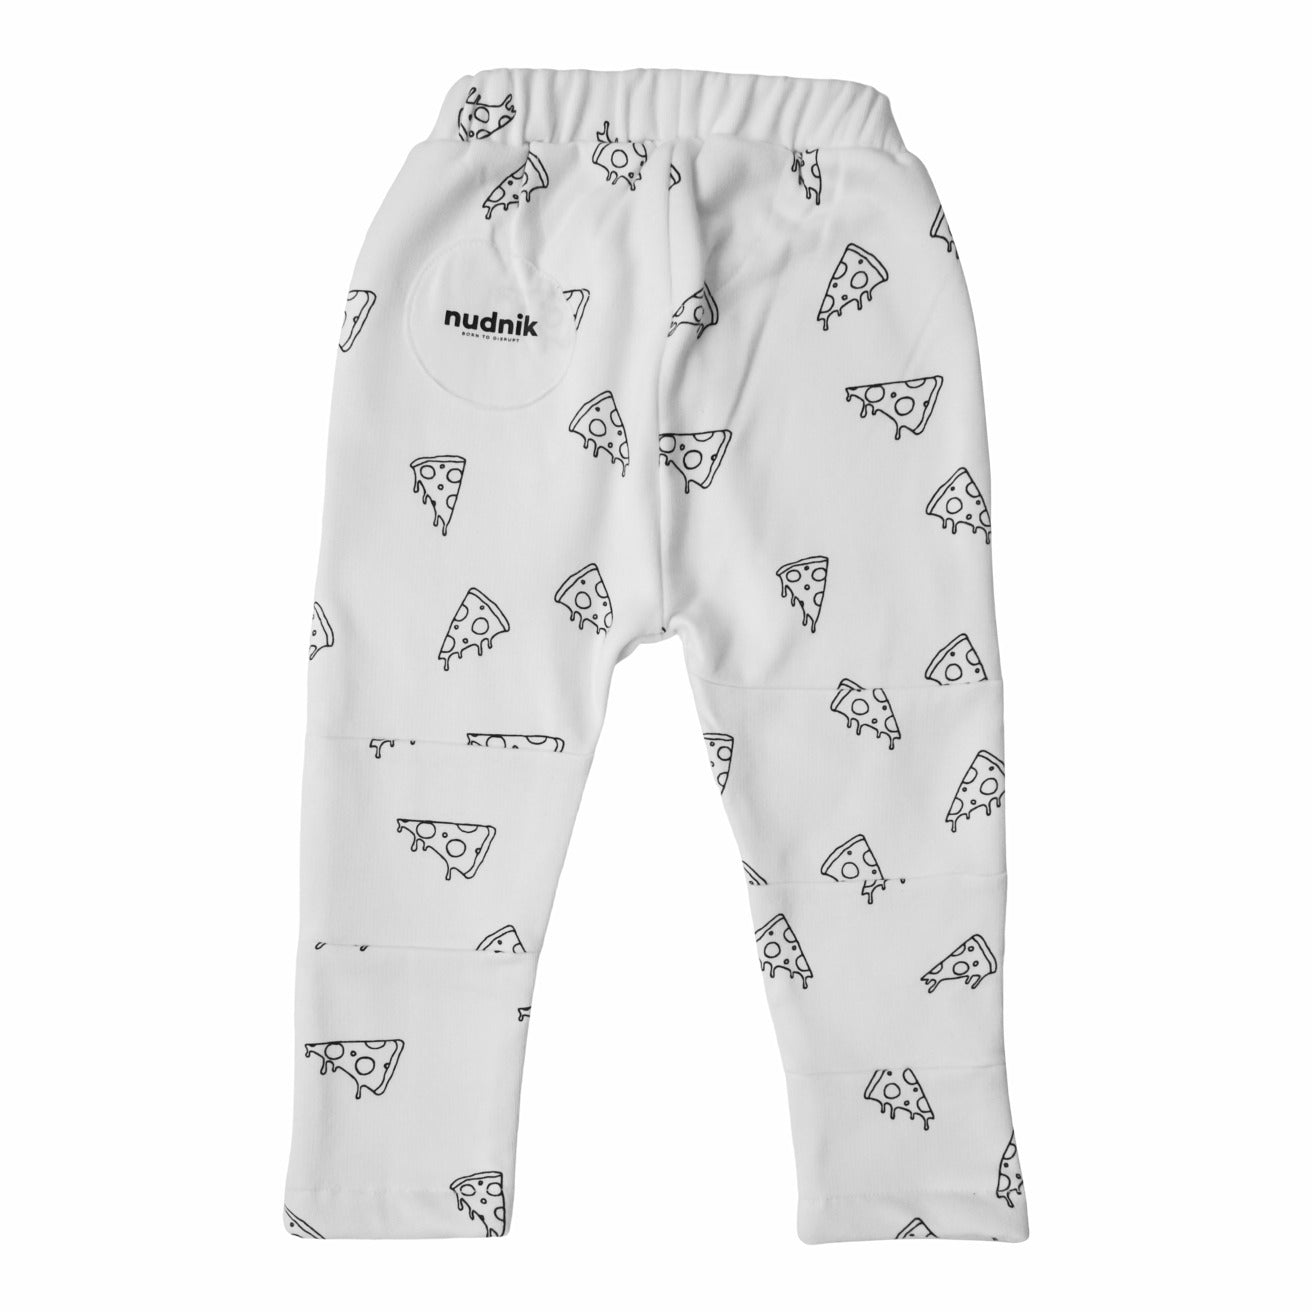 INNOVATOR JOGGER in Pizza Slice - NUDNIK